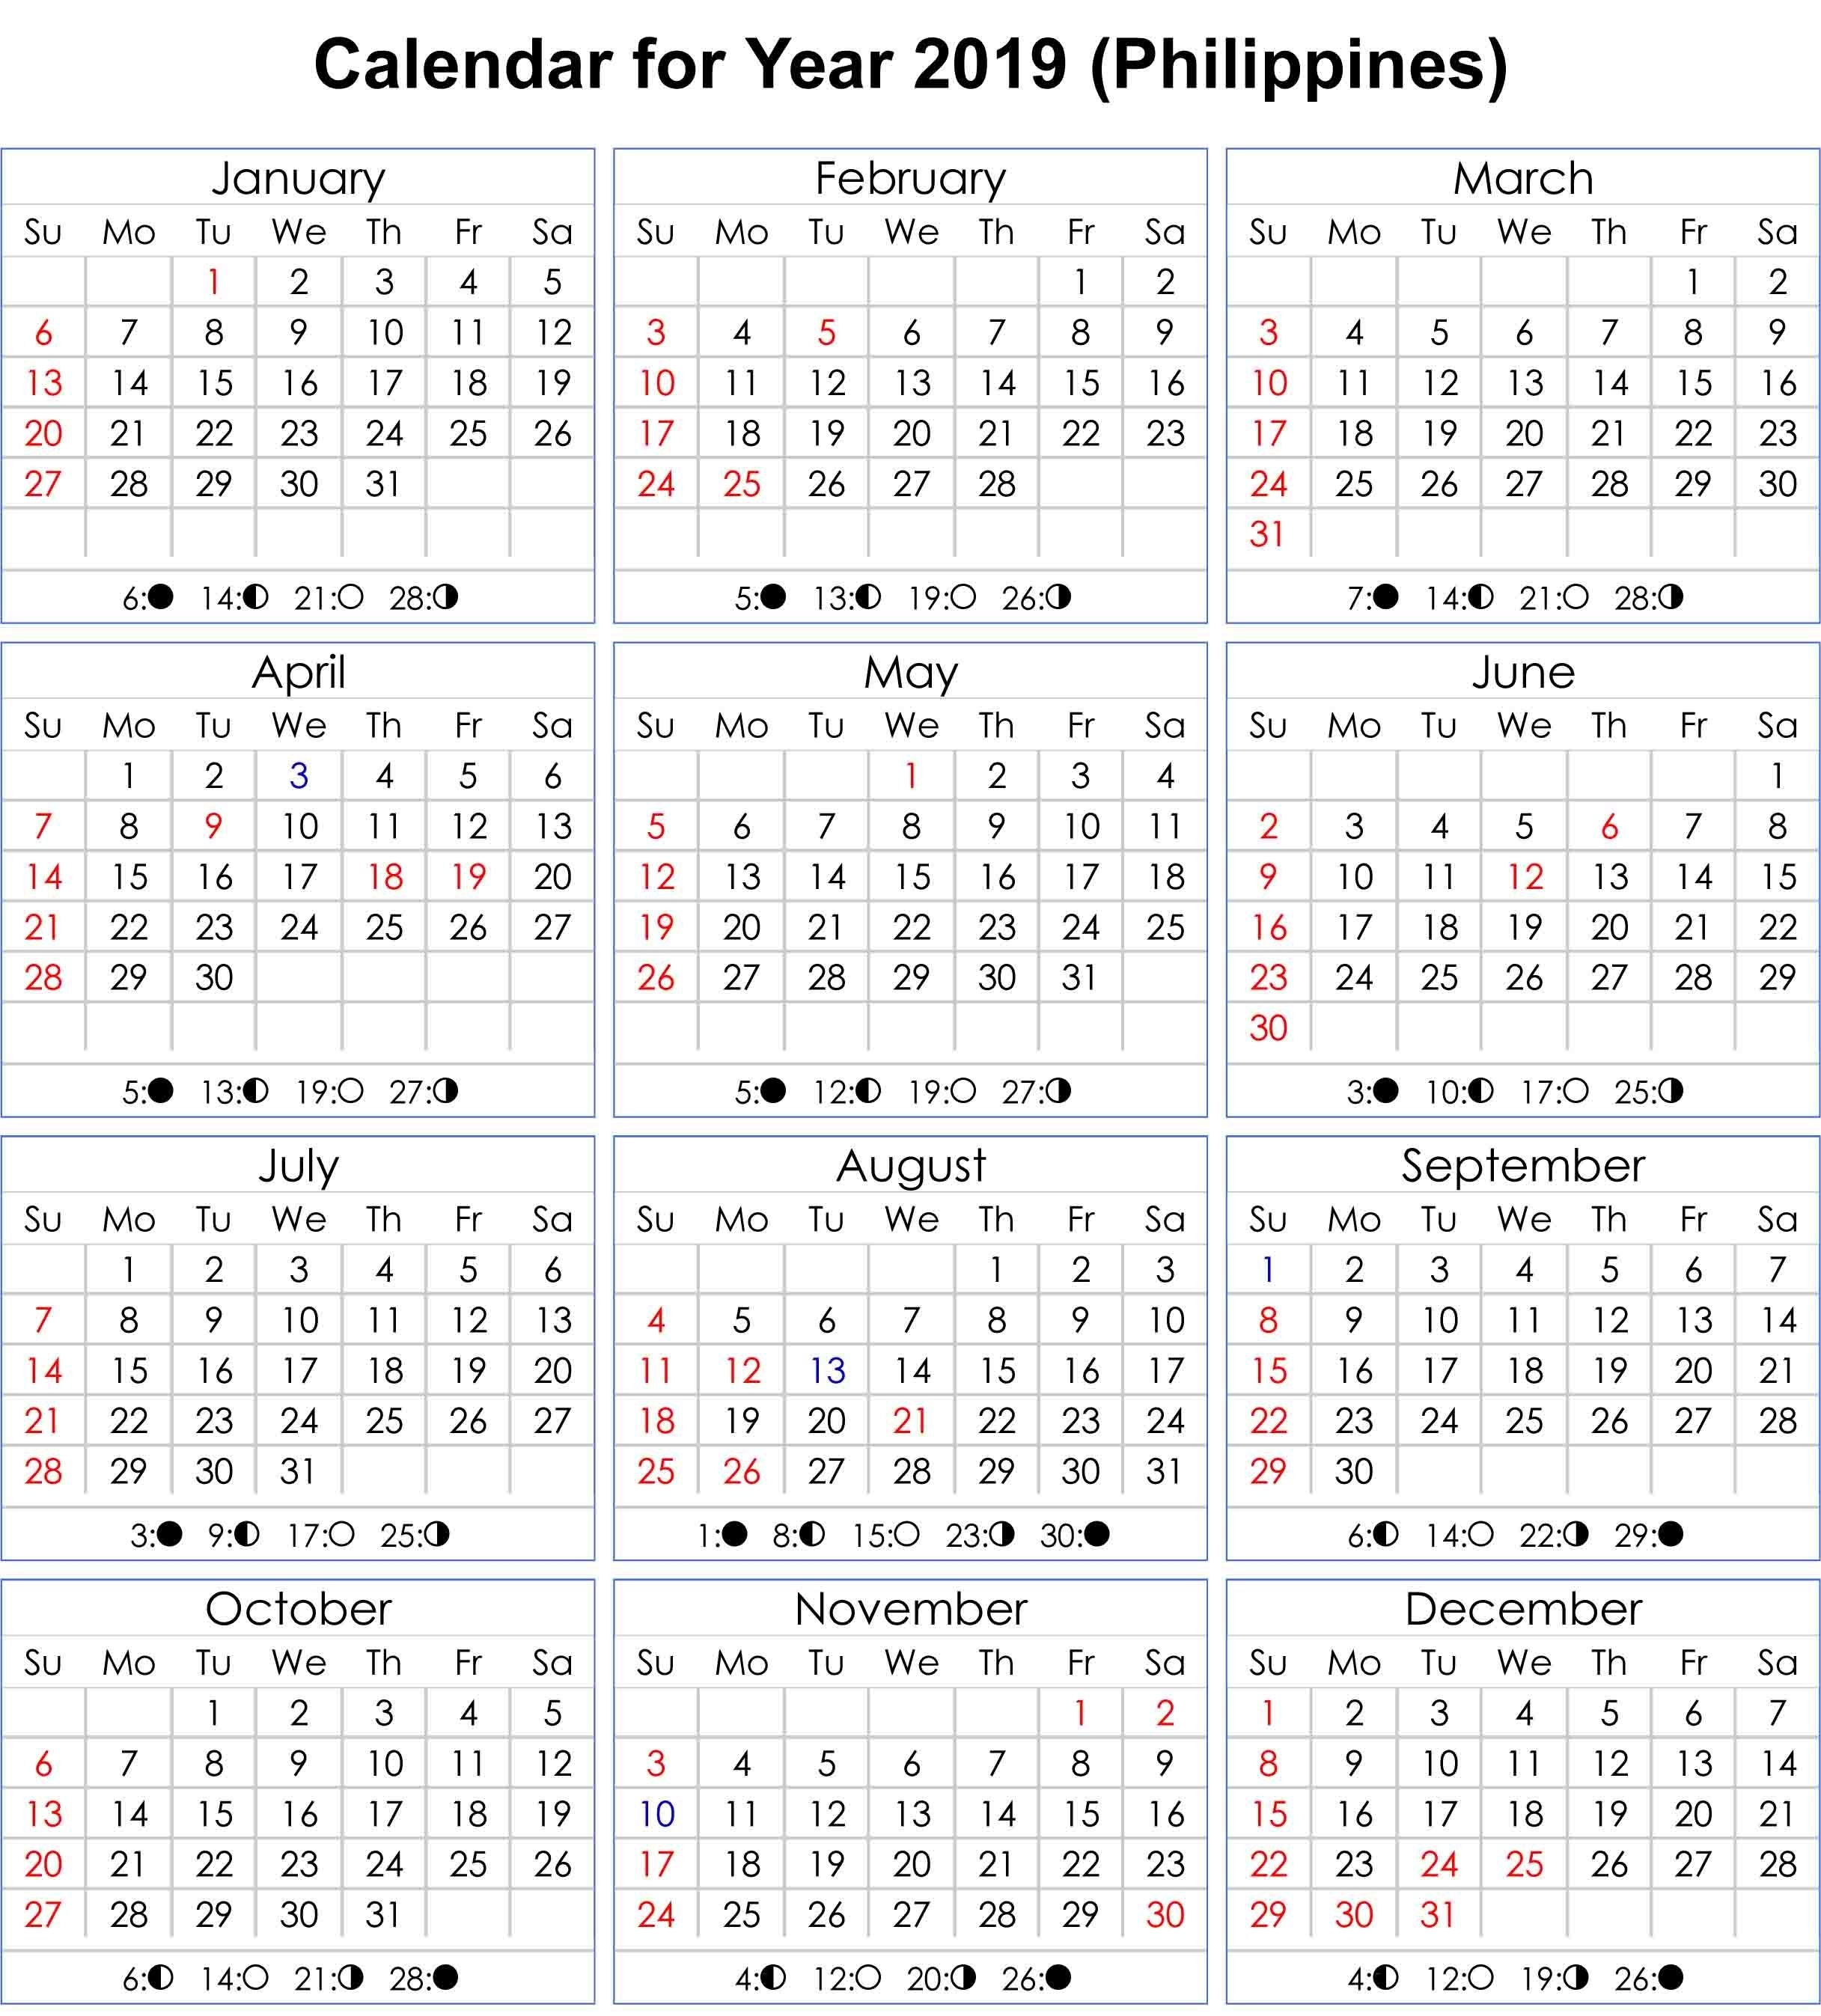 Philippines 2019 Calendar With Moon Phases | Calendar 2019 Calendar Year 2019 Philippines